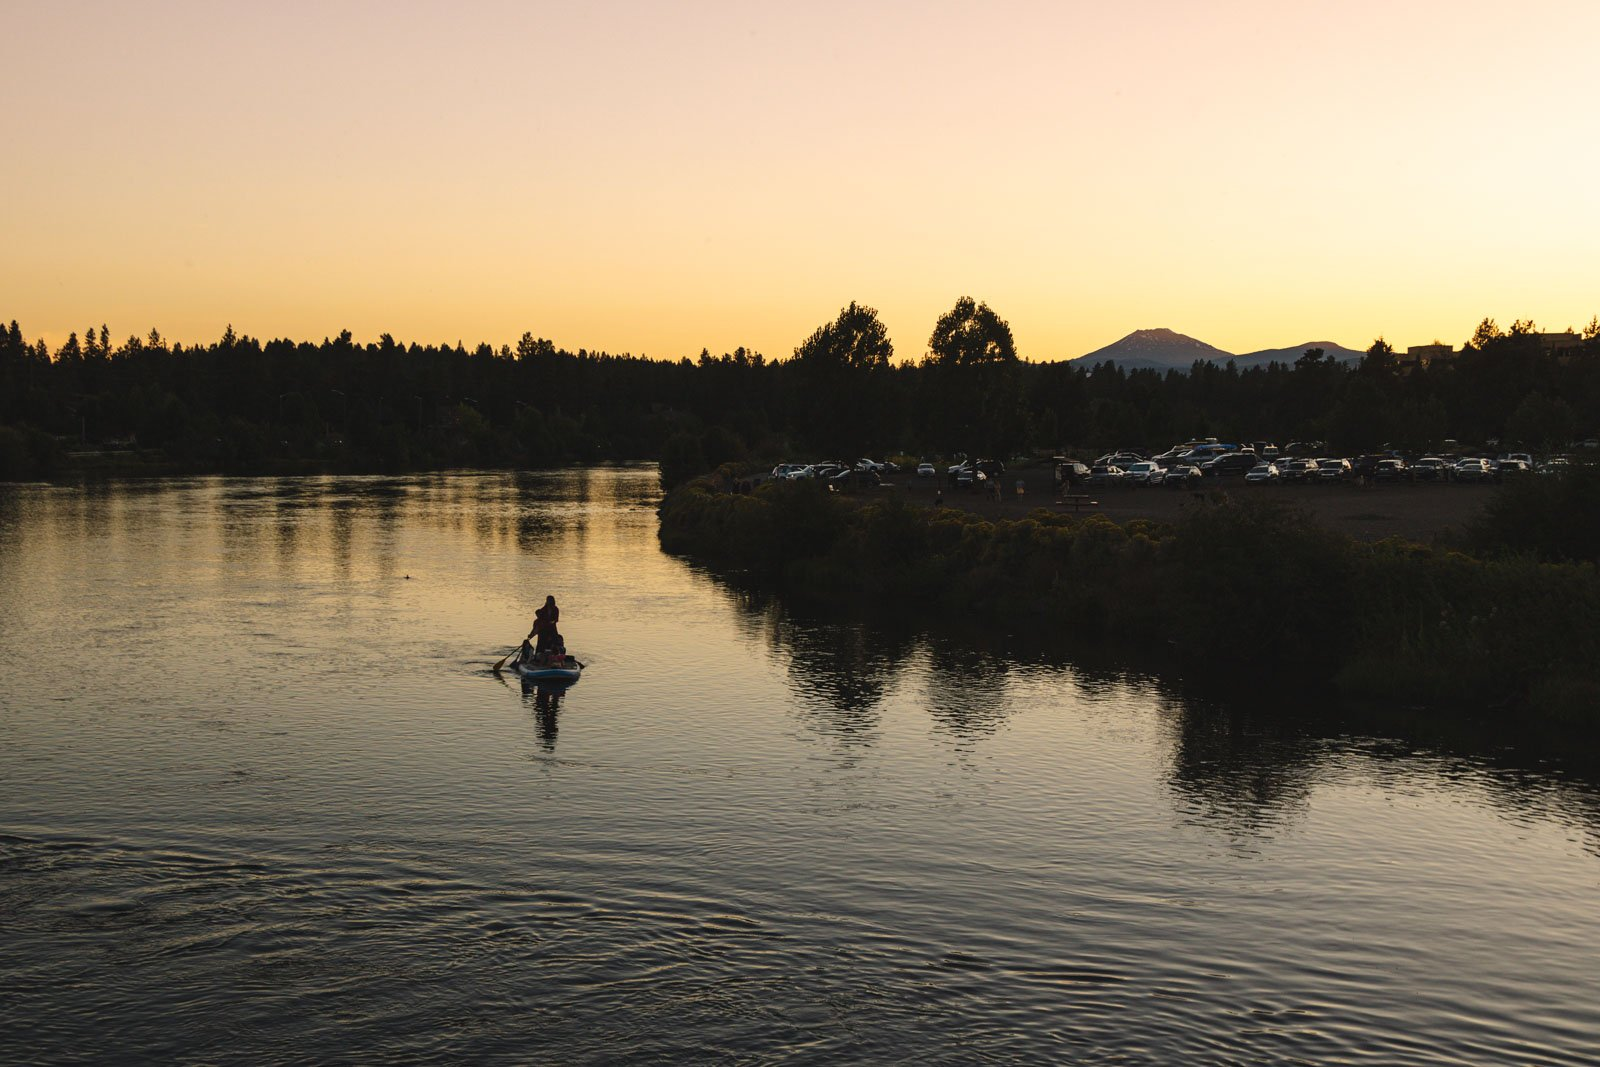 The Deschutes River paddleboarder